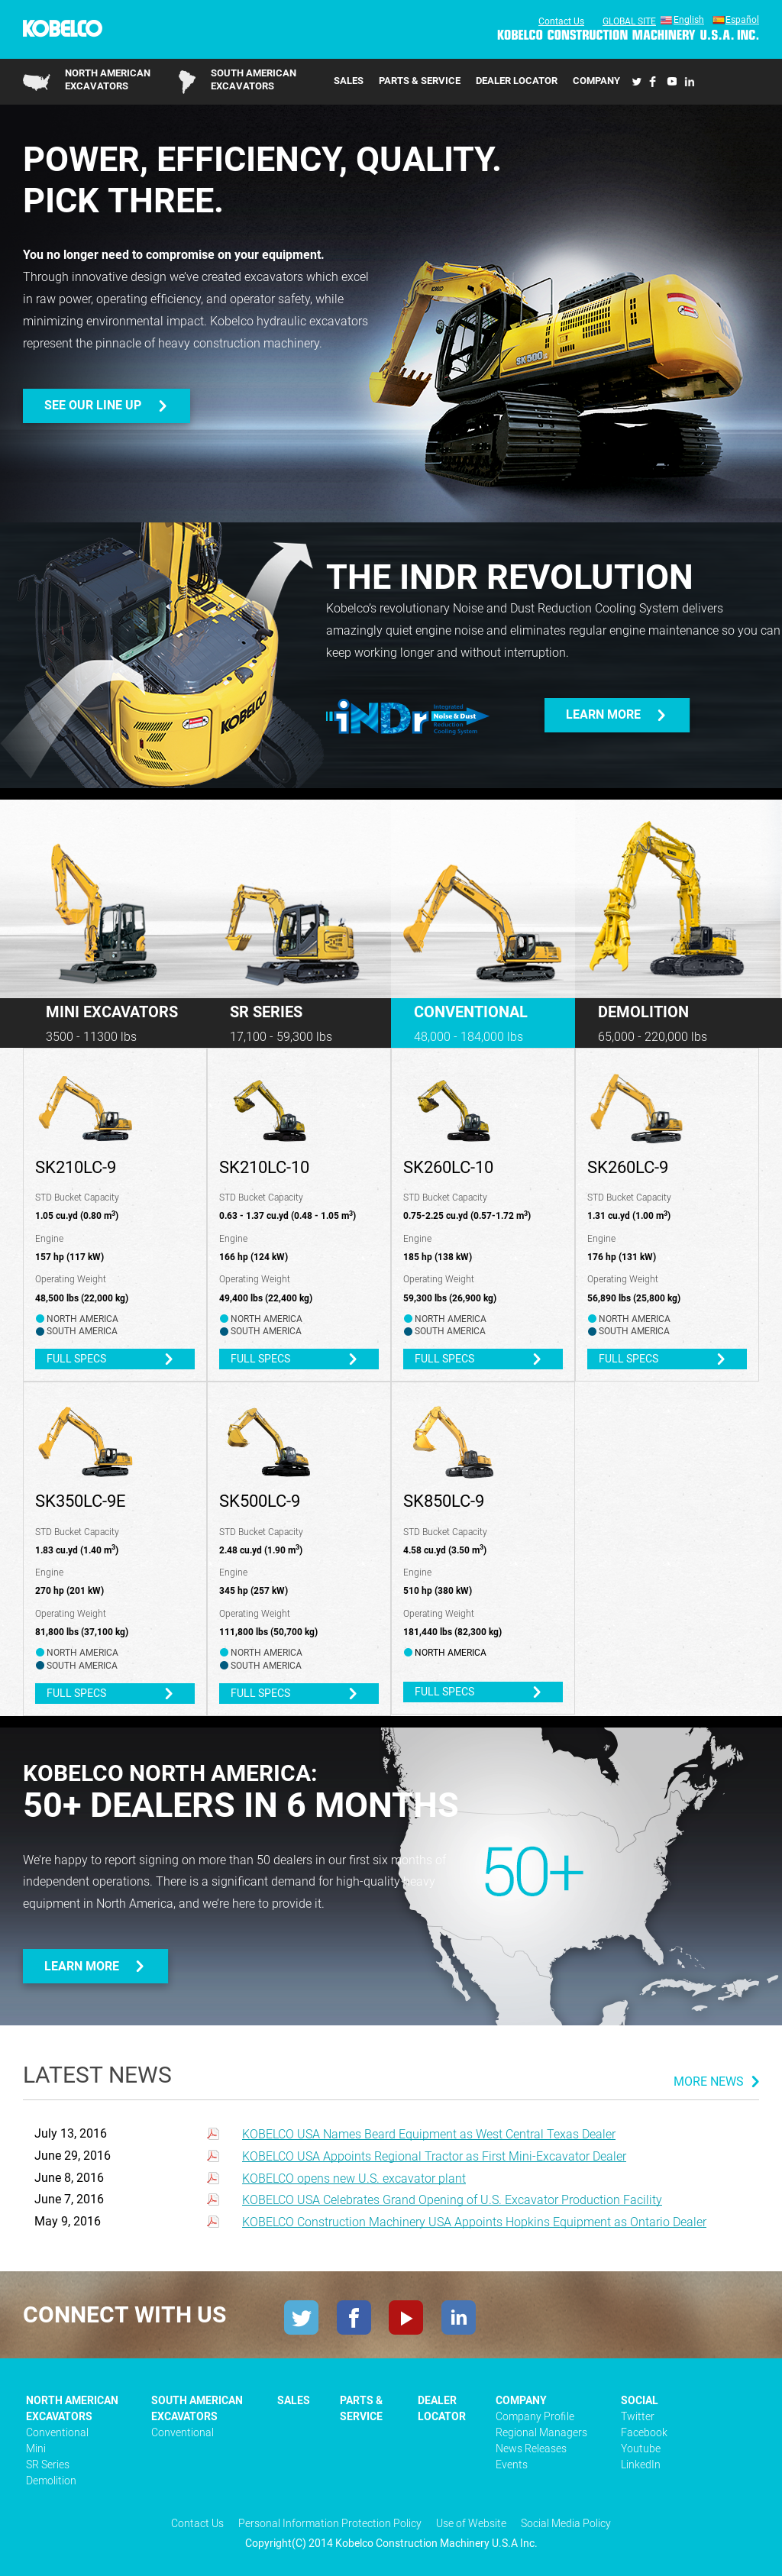 Kobelco Competitors, Revenue and Employees - Owler Company Profile